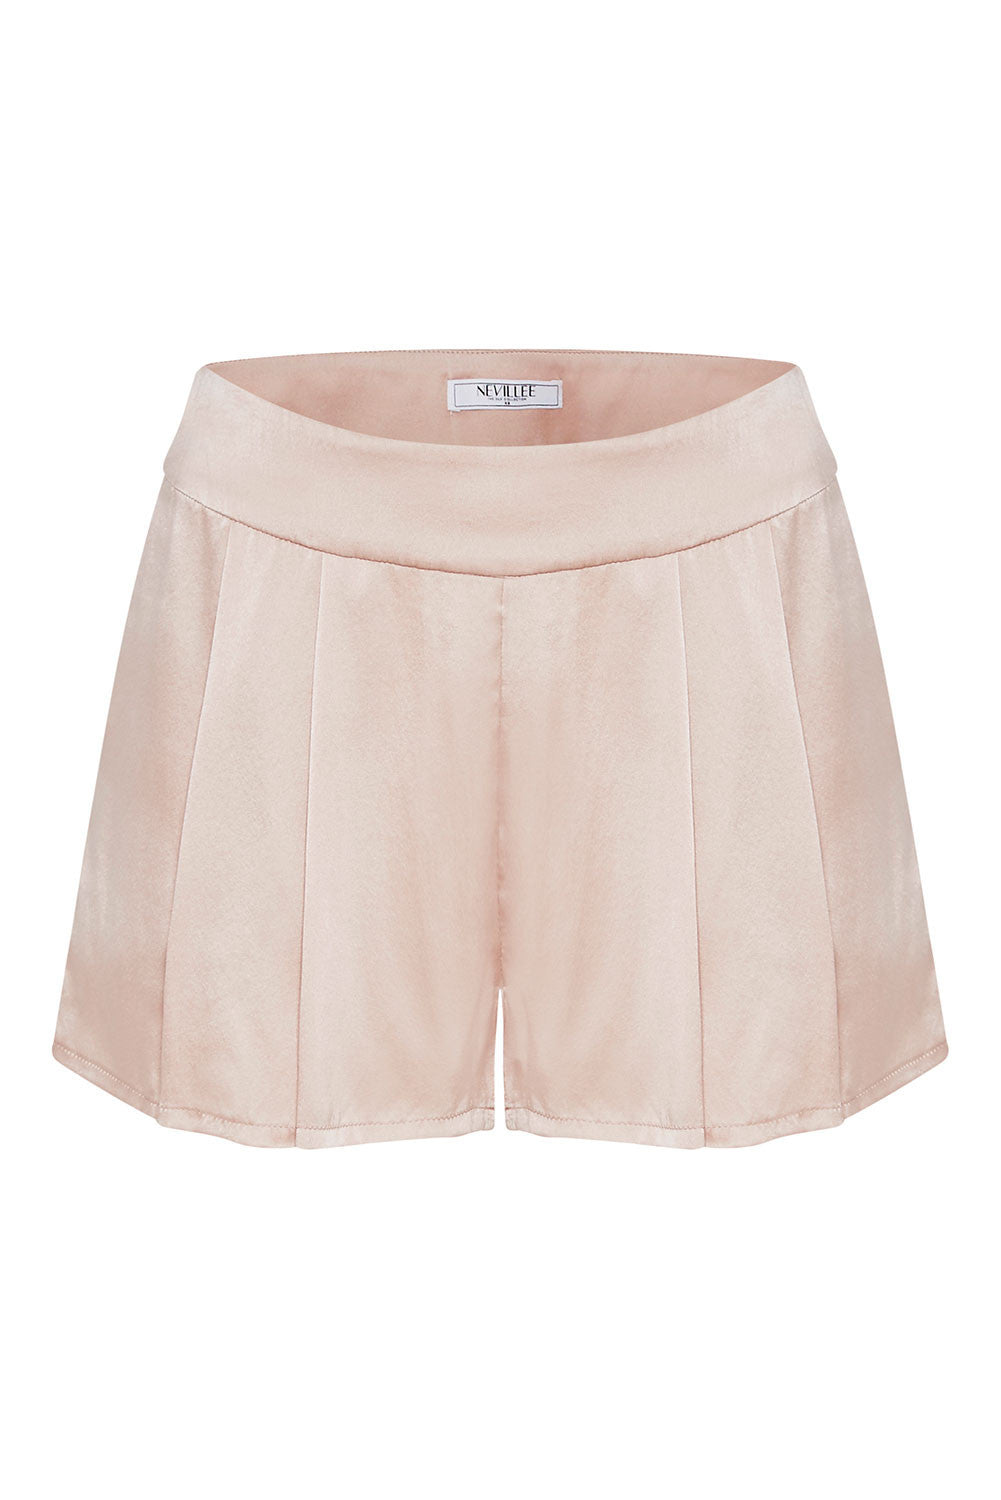 SILK SHORTS - BLUSH PINK